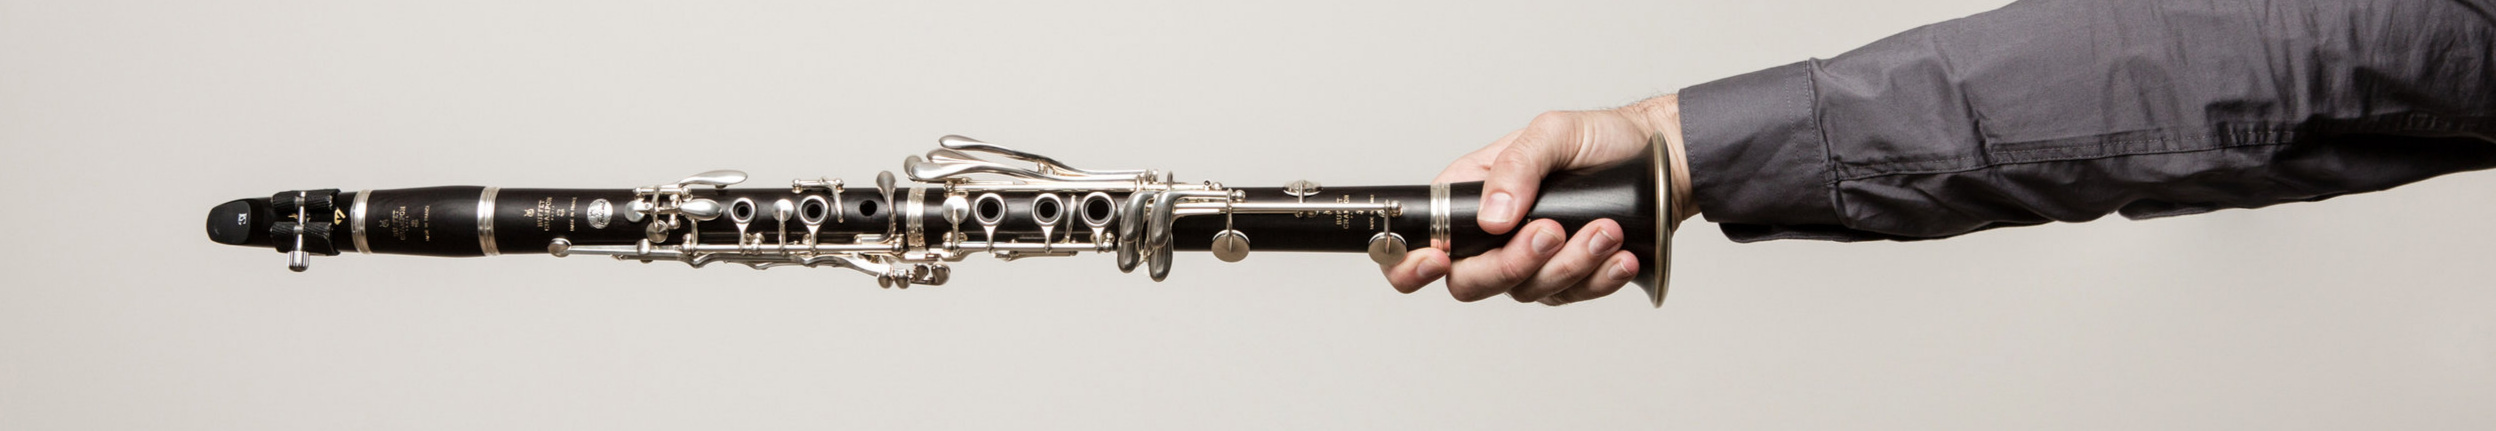 Clarinet Melbourne Chamber Players.jpg